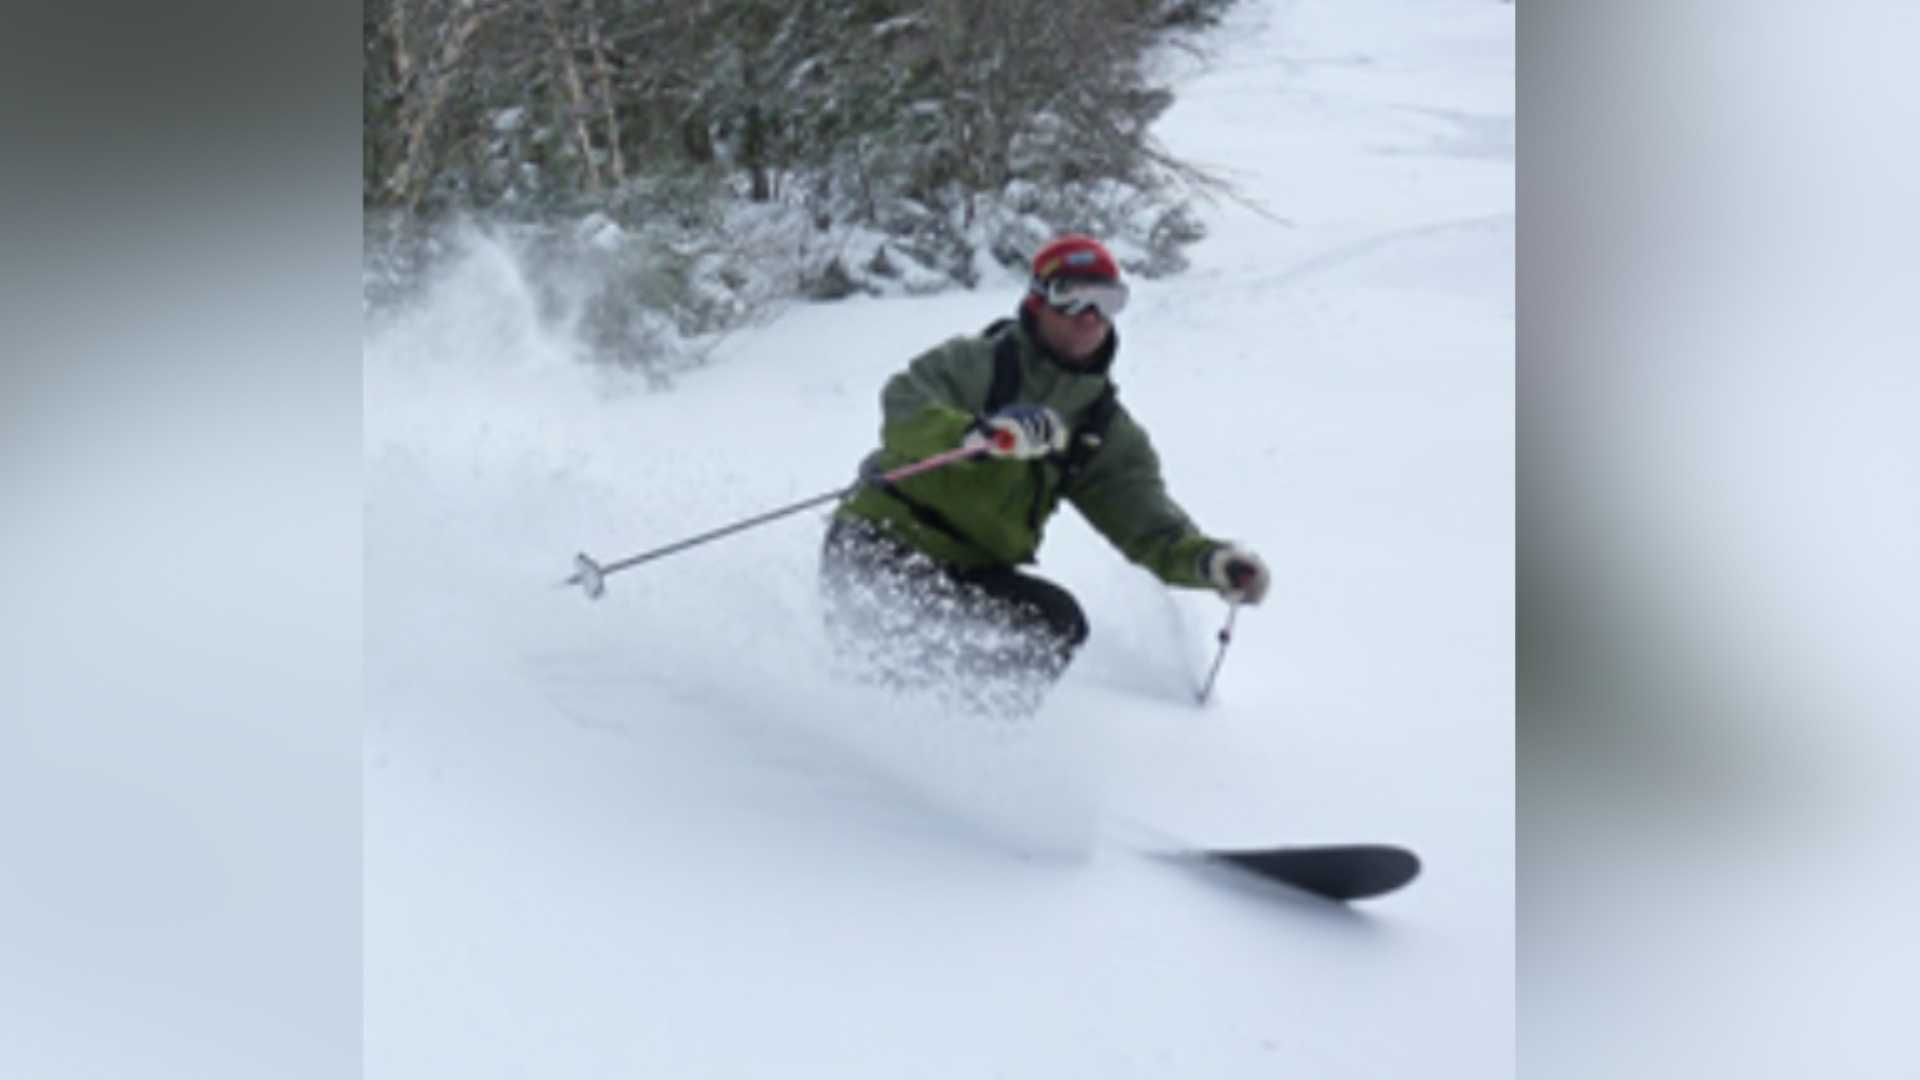 04-21-13 Vt. man dies in Colo. avalanche - img